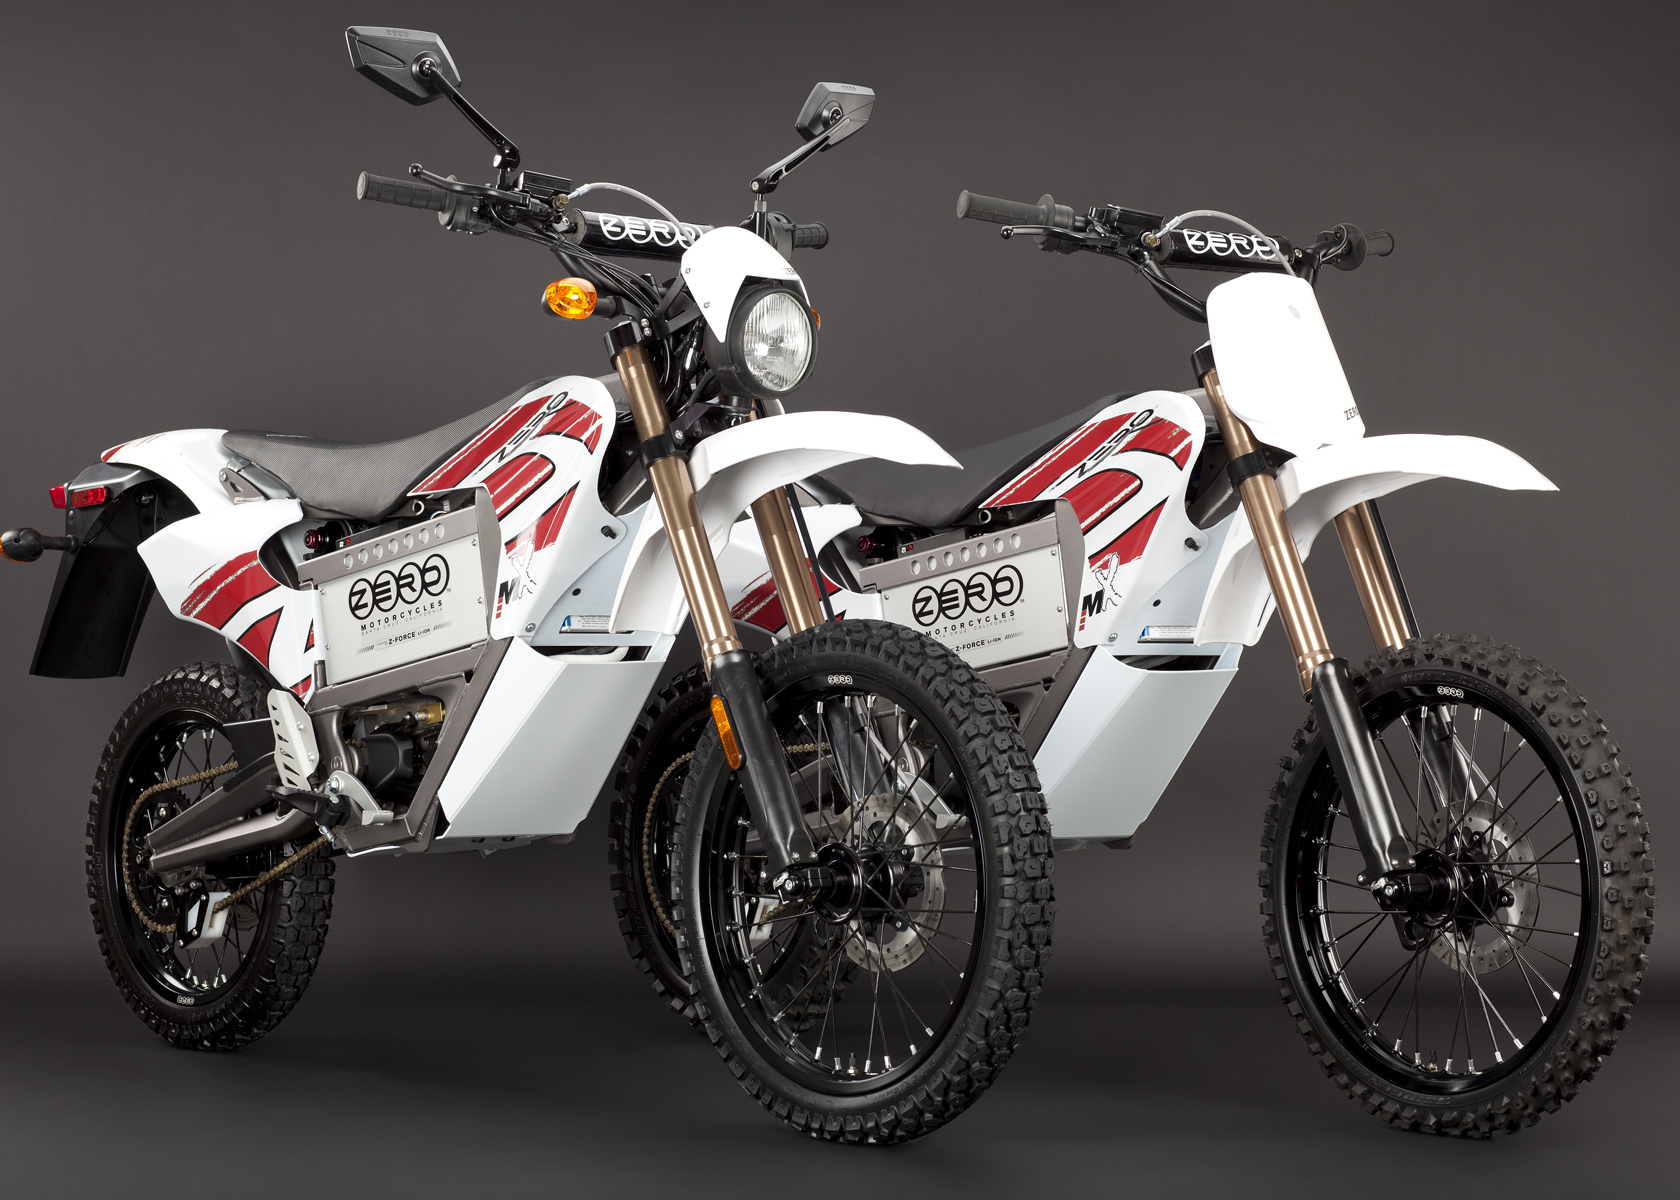 '.2011 Zero MX Electric Motorcycle: Pair, Dirt and Street Legal Models.'